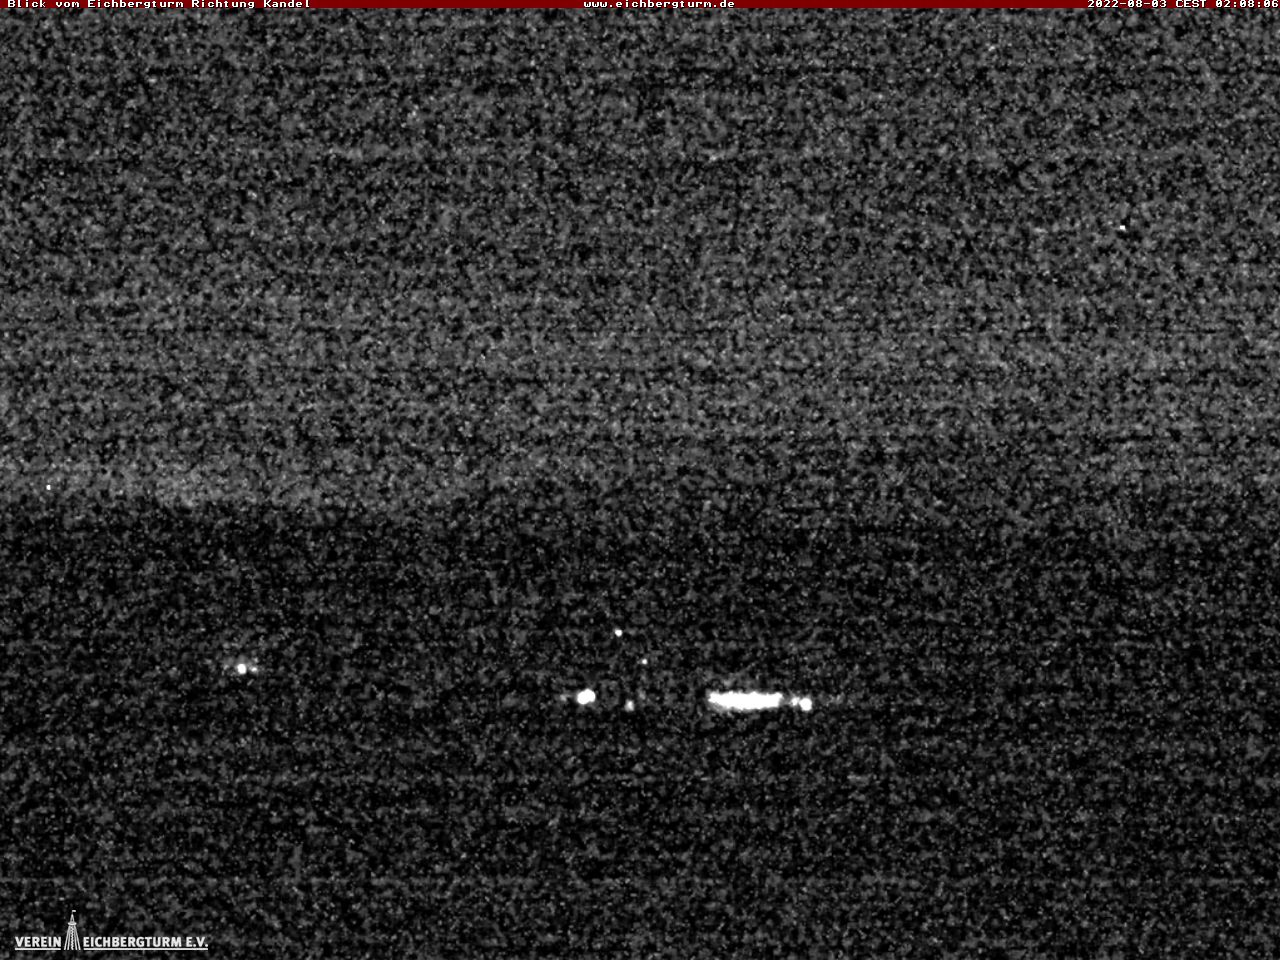 Eichbergturm-Webcam